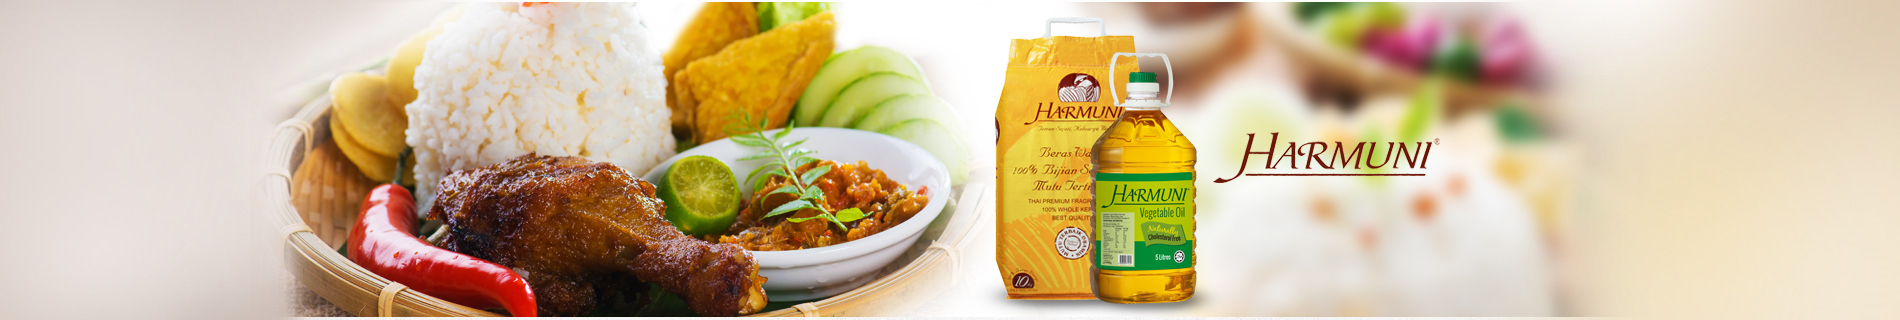 Harmuni for Aroma royal thai cuisine